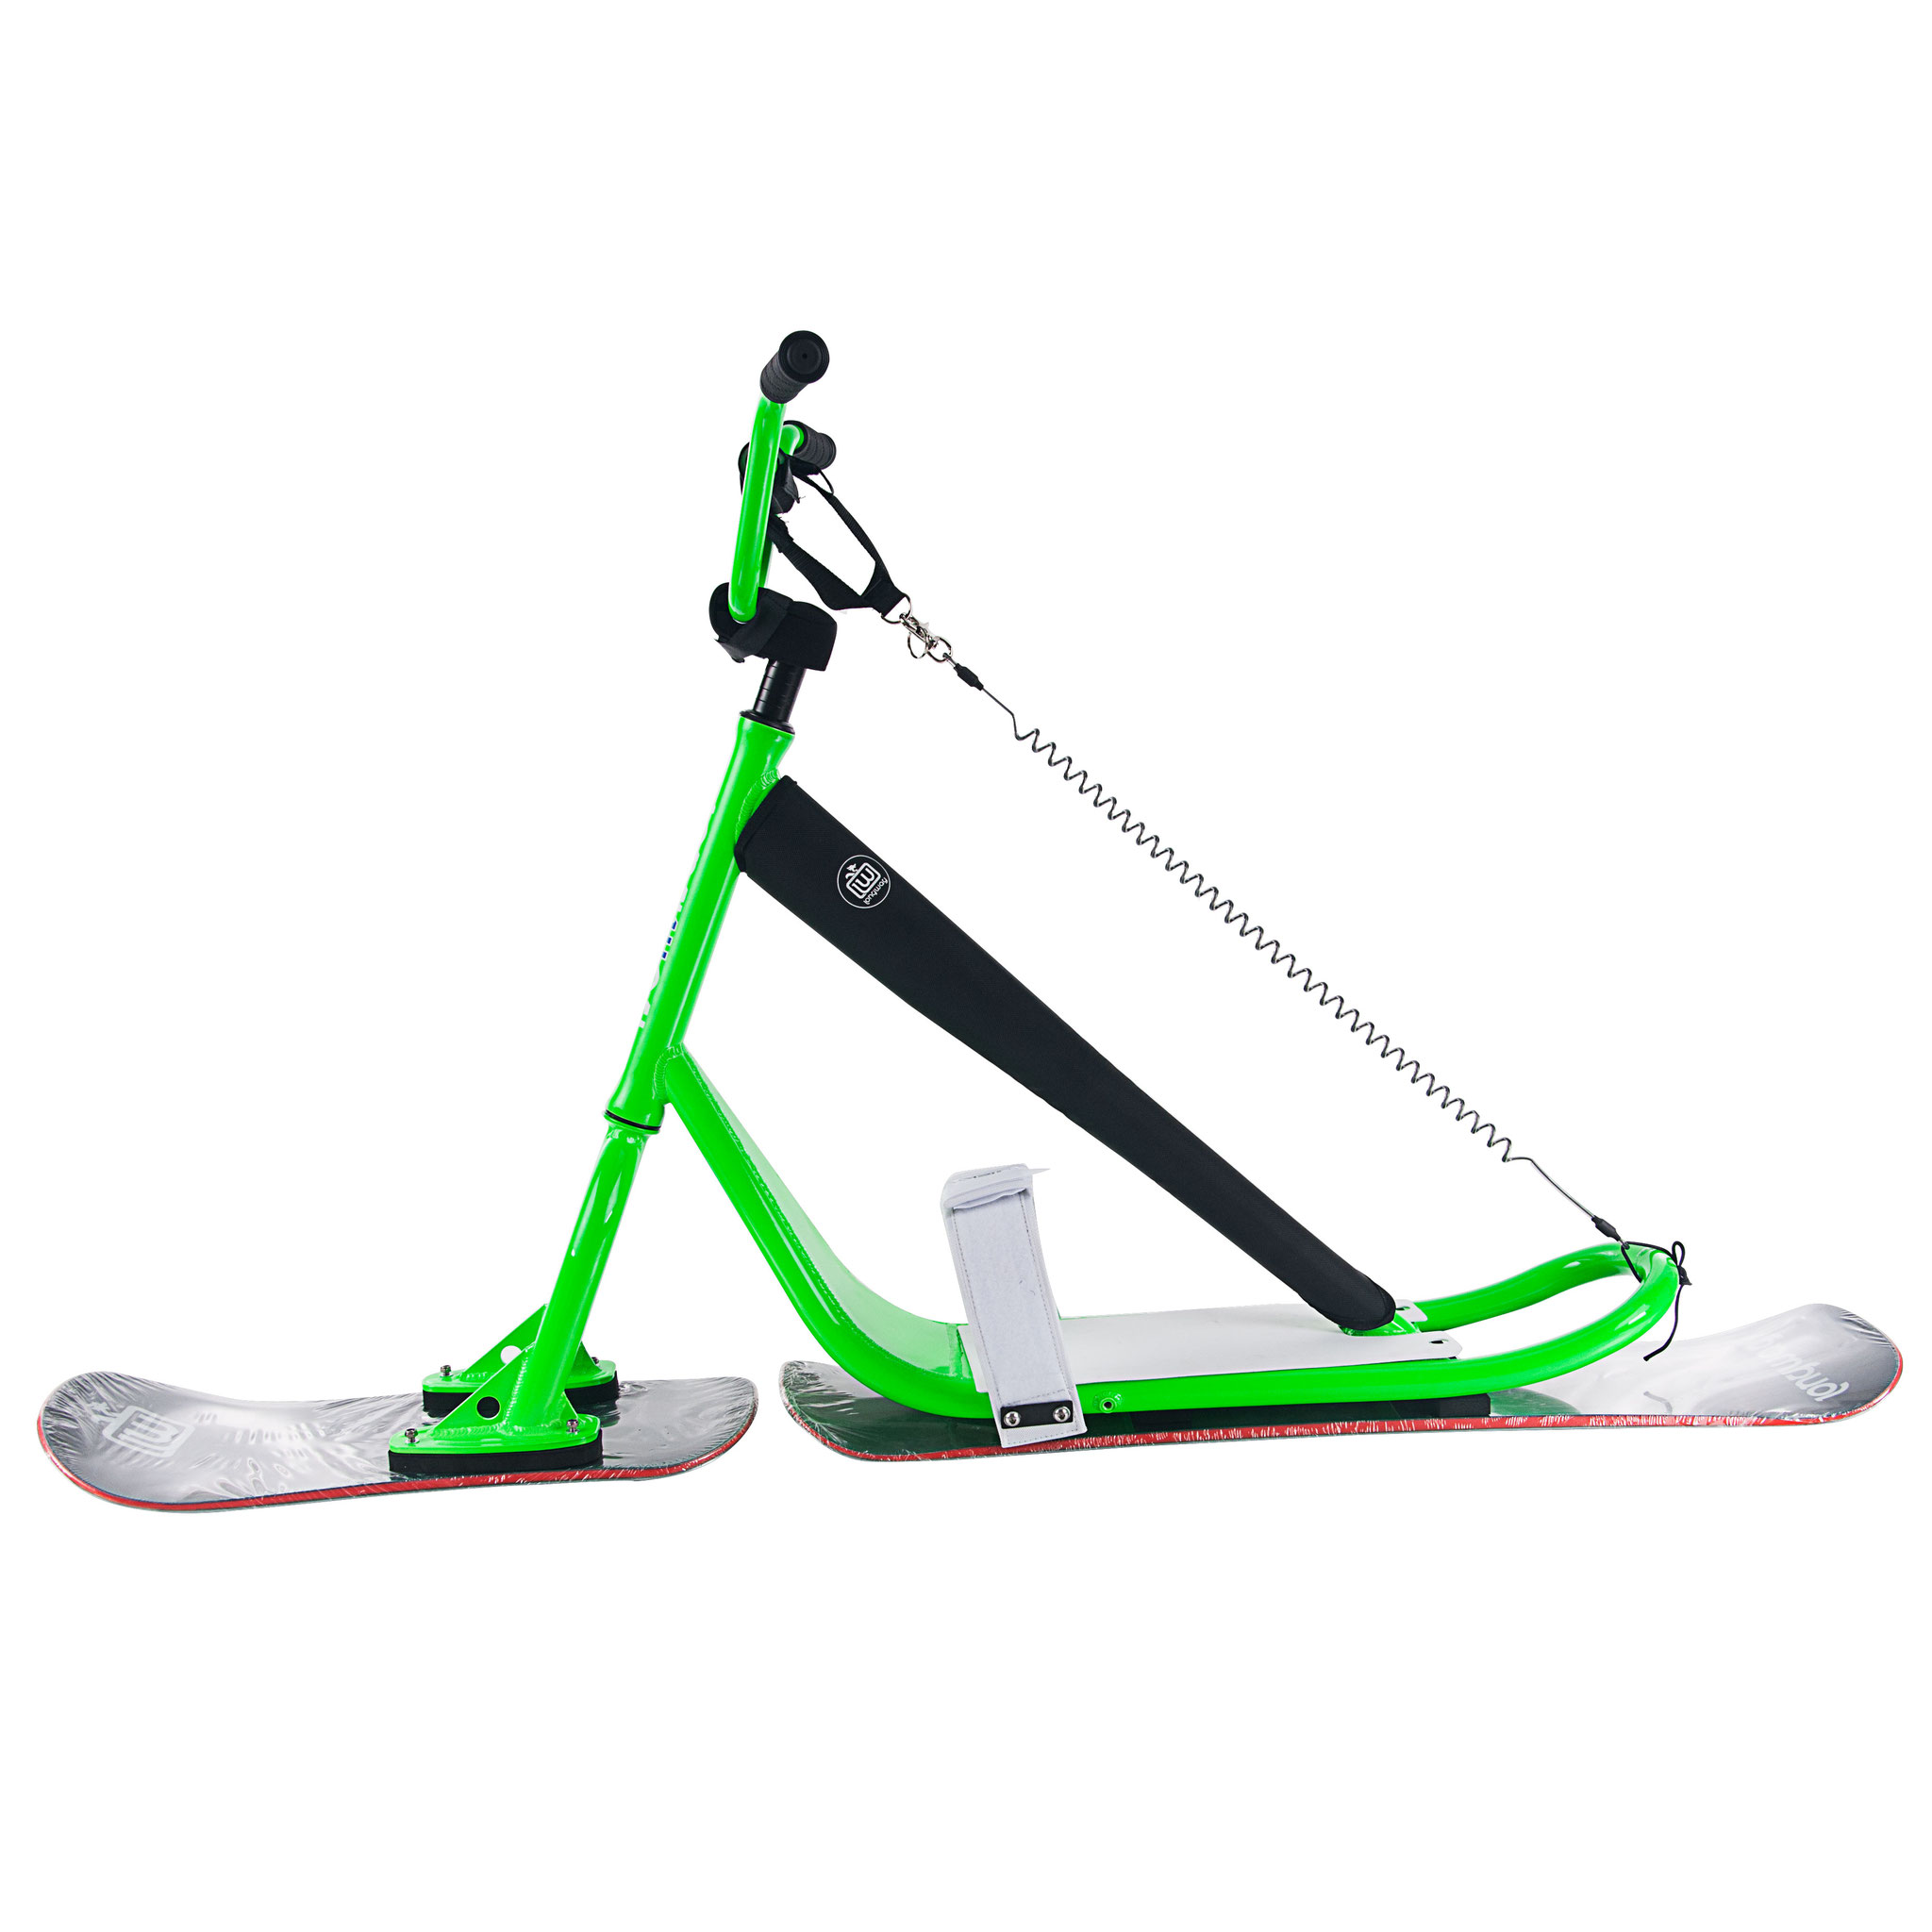 Longway Sports Snowscoot Suilbikes green 3